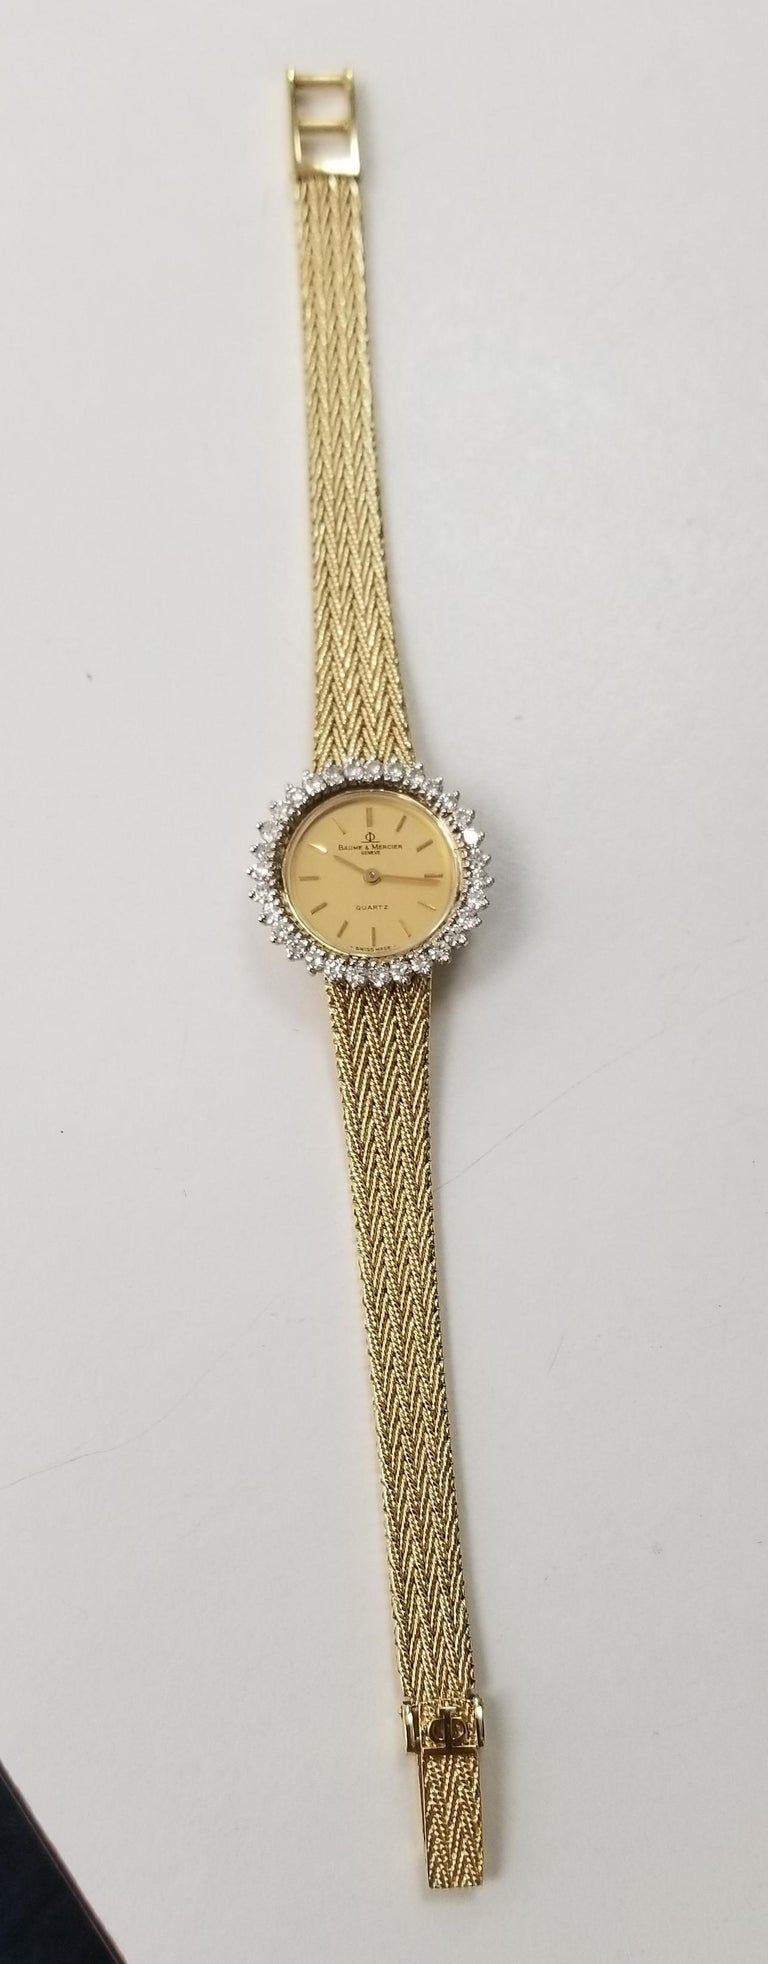 Baume & Mercier 14k yellow gold woven mesh band and diamond watch, containing 31 full cut diamonds of very fine quality weighing 1.00cts.  The watch is in very good condition and measures 6 9/16 or 6 13/16 inches.  the watch has a cabochon sapphire.